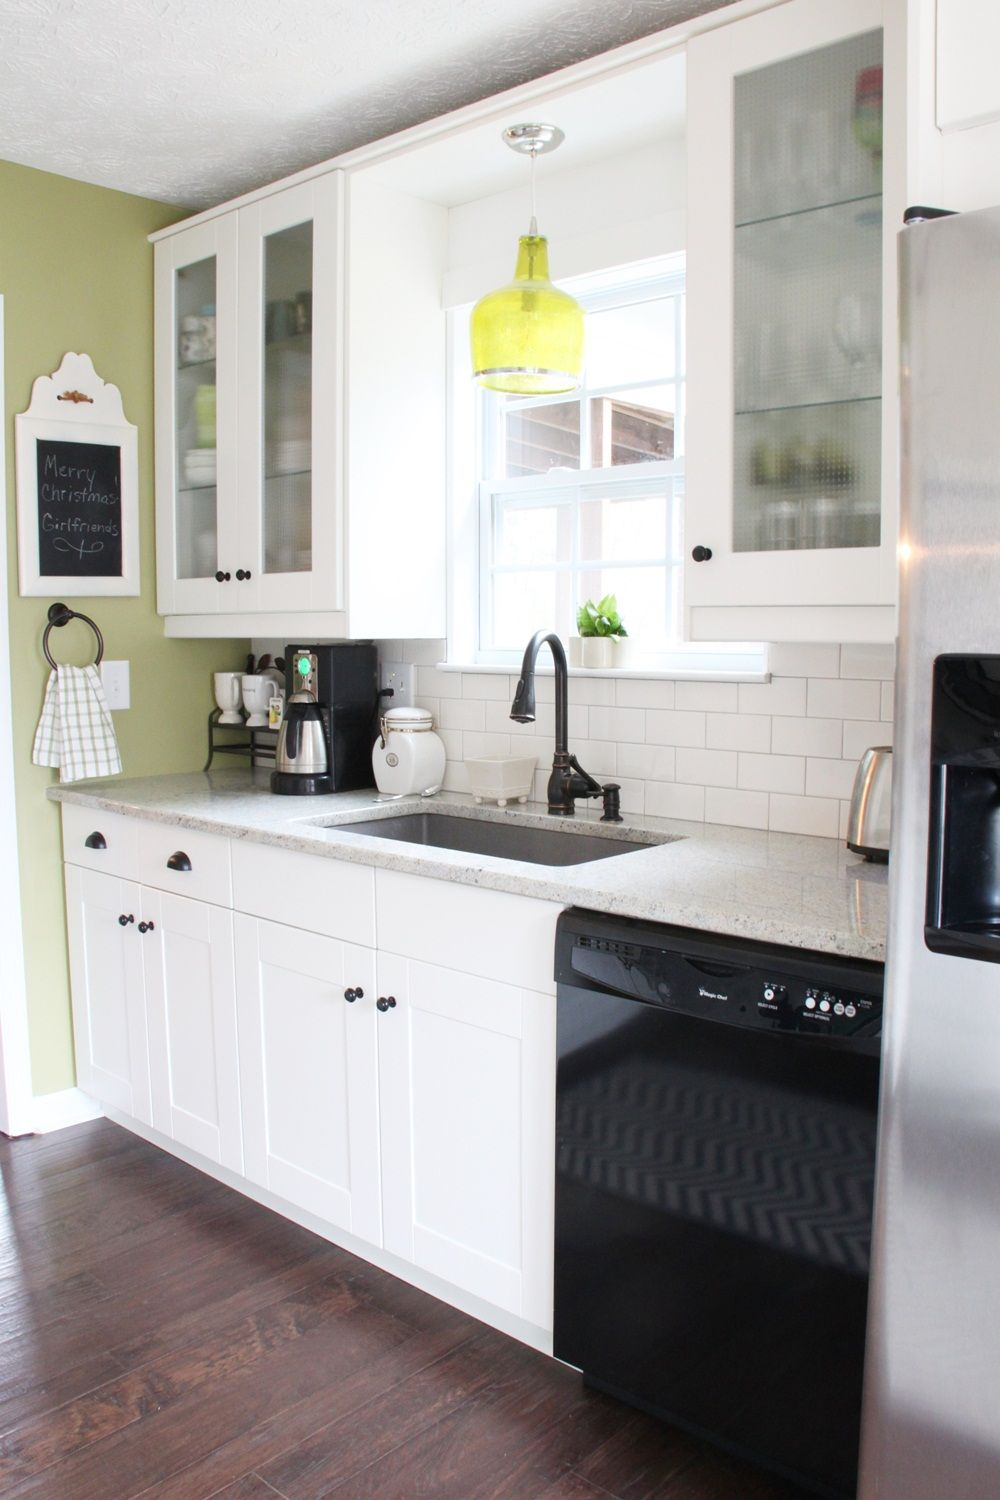 Ikea Kitchen Design Cost Ikea Kitchen Renovation Cost Breakdown Kitchen For The Soul